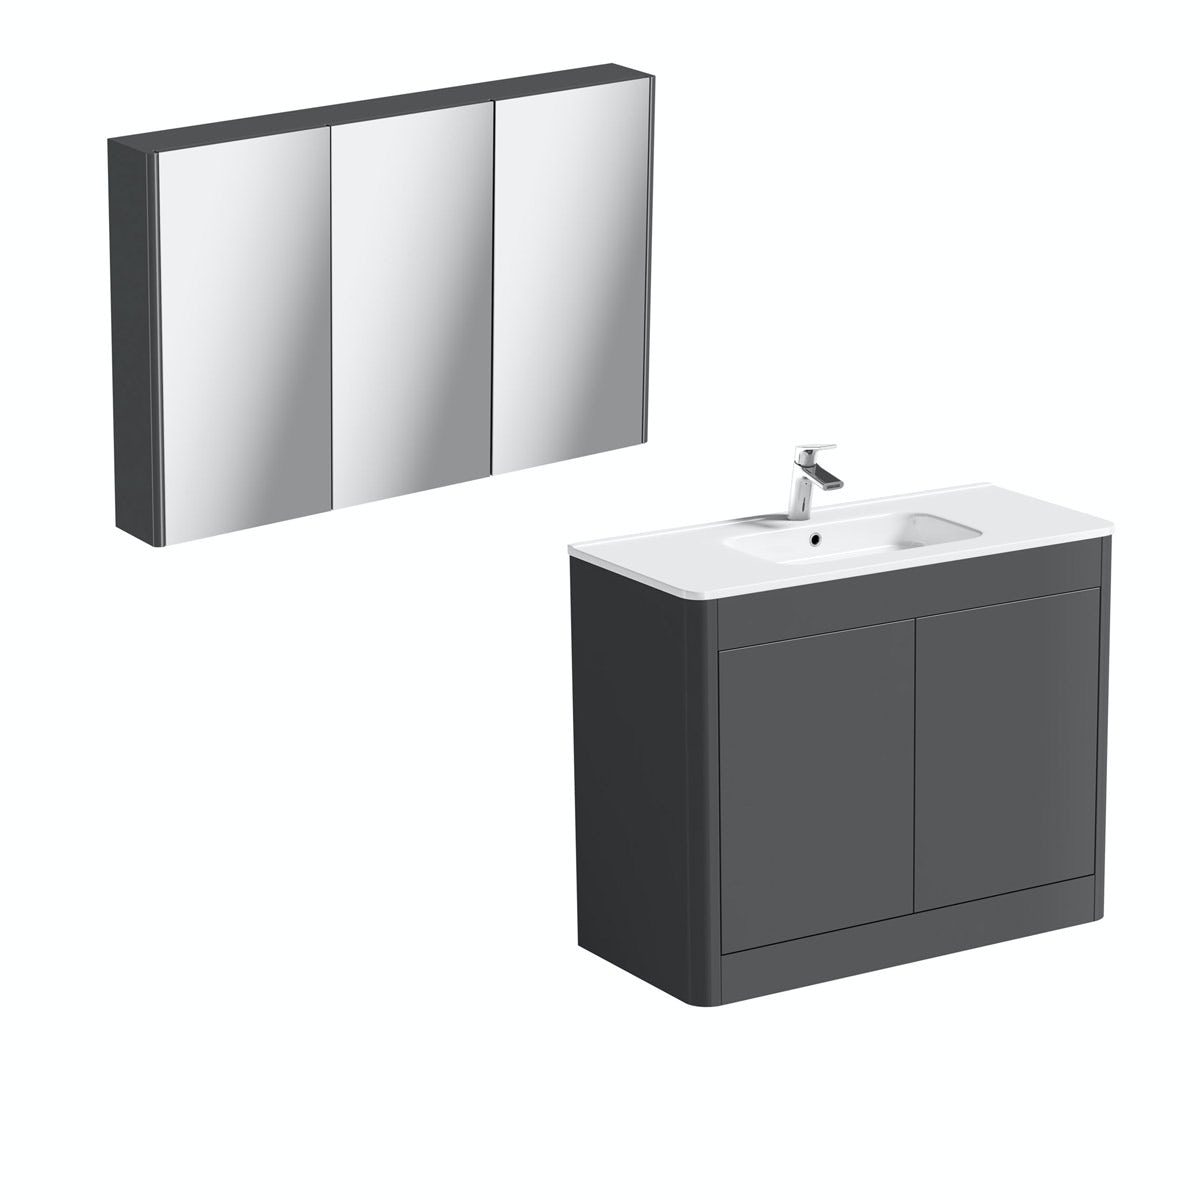 Mode Carter slate vanity unit 1000mm and mirror